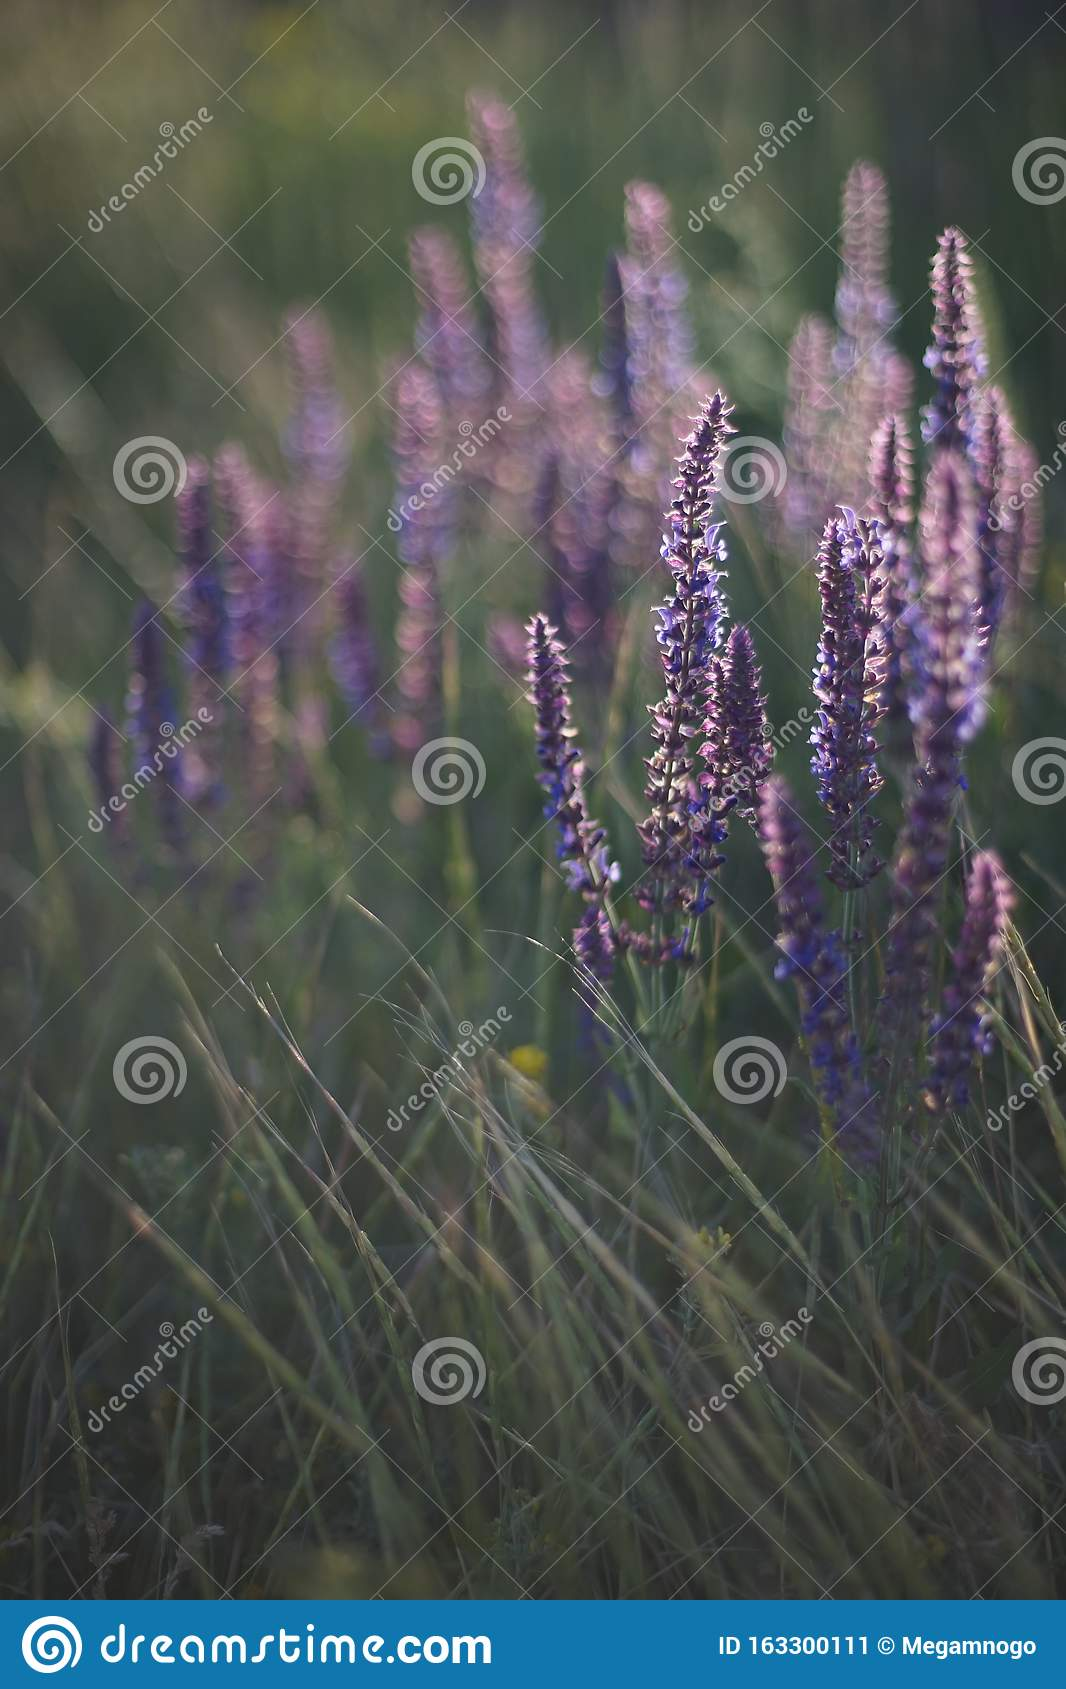 Lavender At Sunset Field Of Purple Flowers Stock Image Image Of Scented Blue 163300111